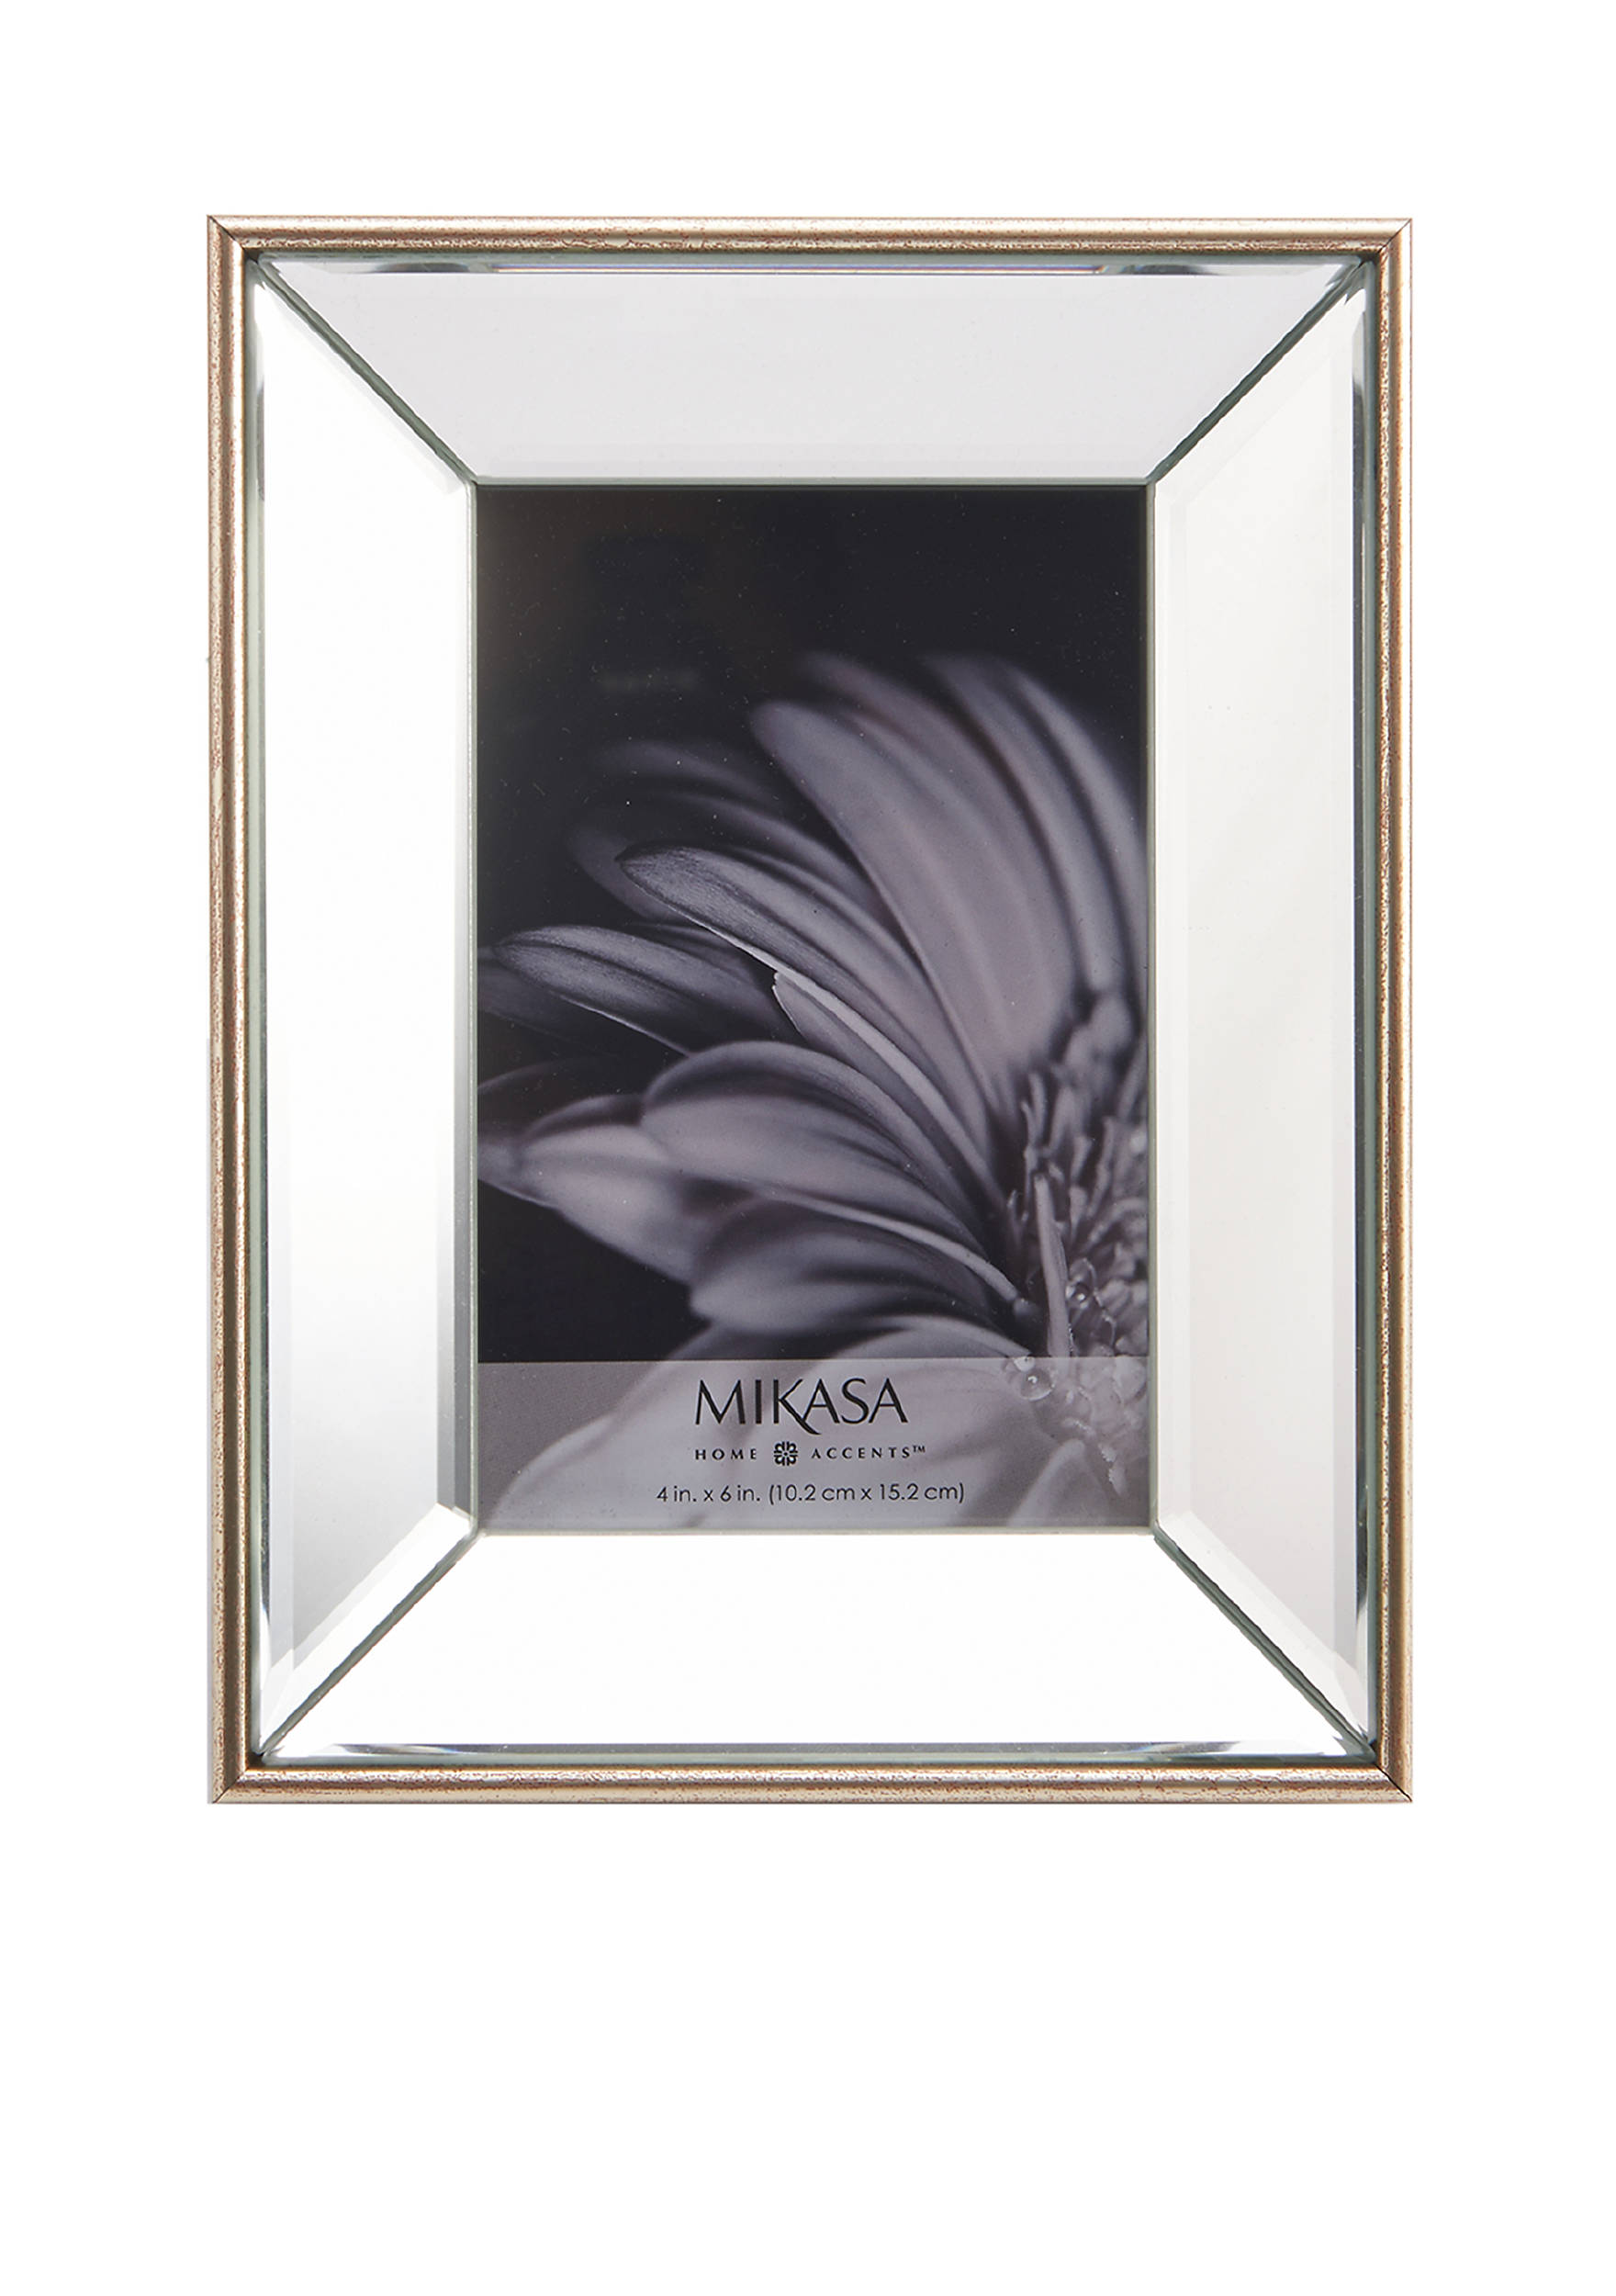 images champagne plastic mirror frame - Mikasa Picture Frames